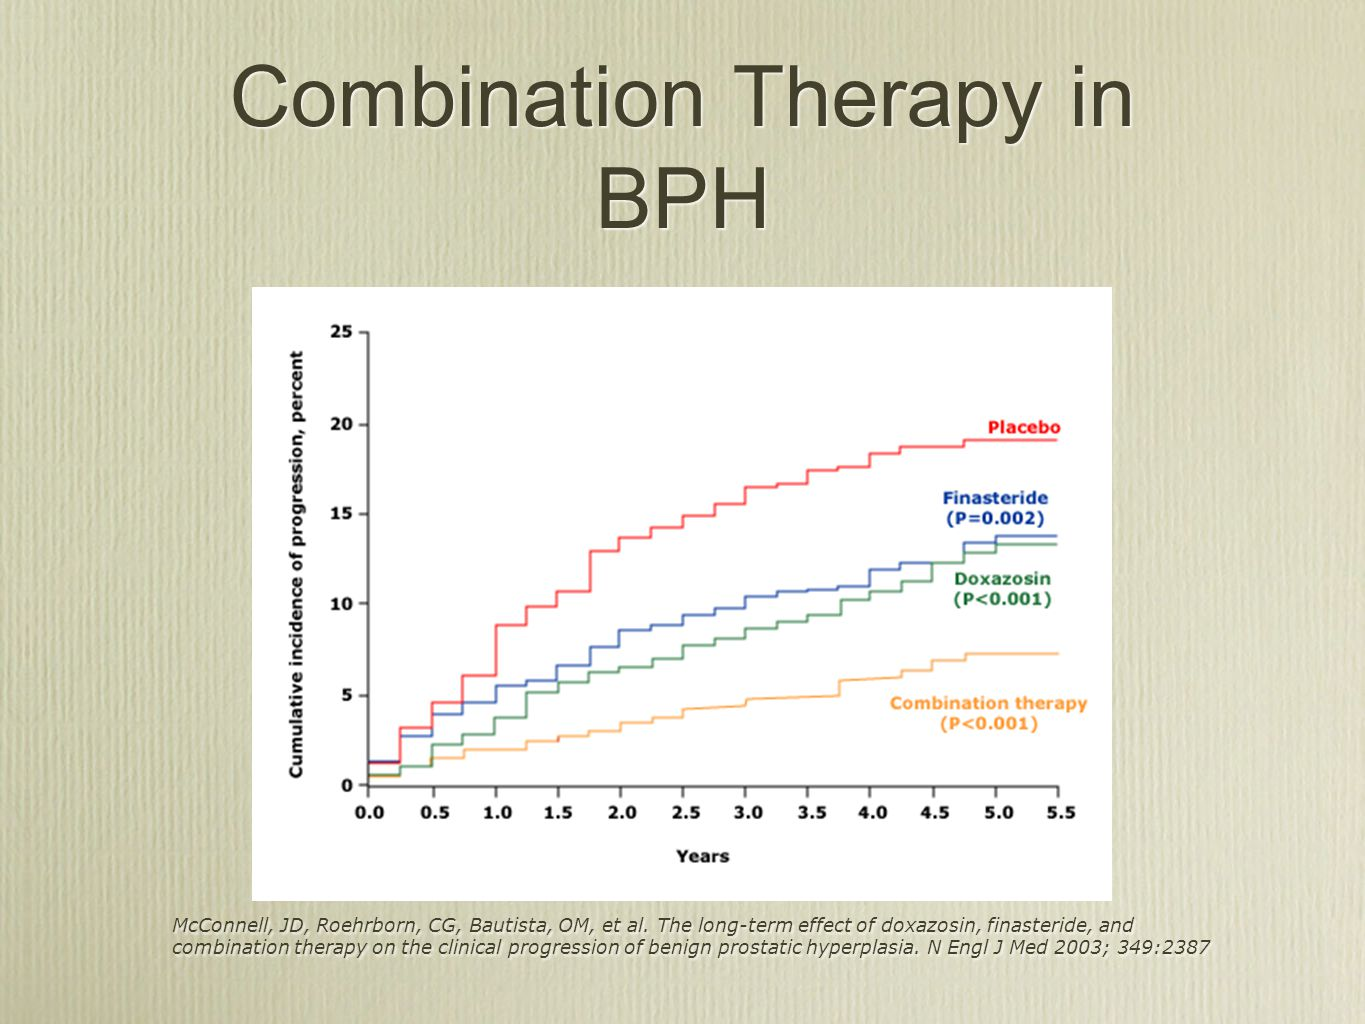 Combination Therapy in BPH